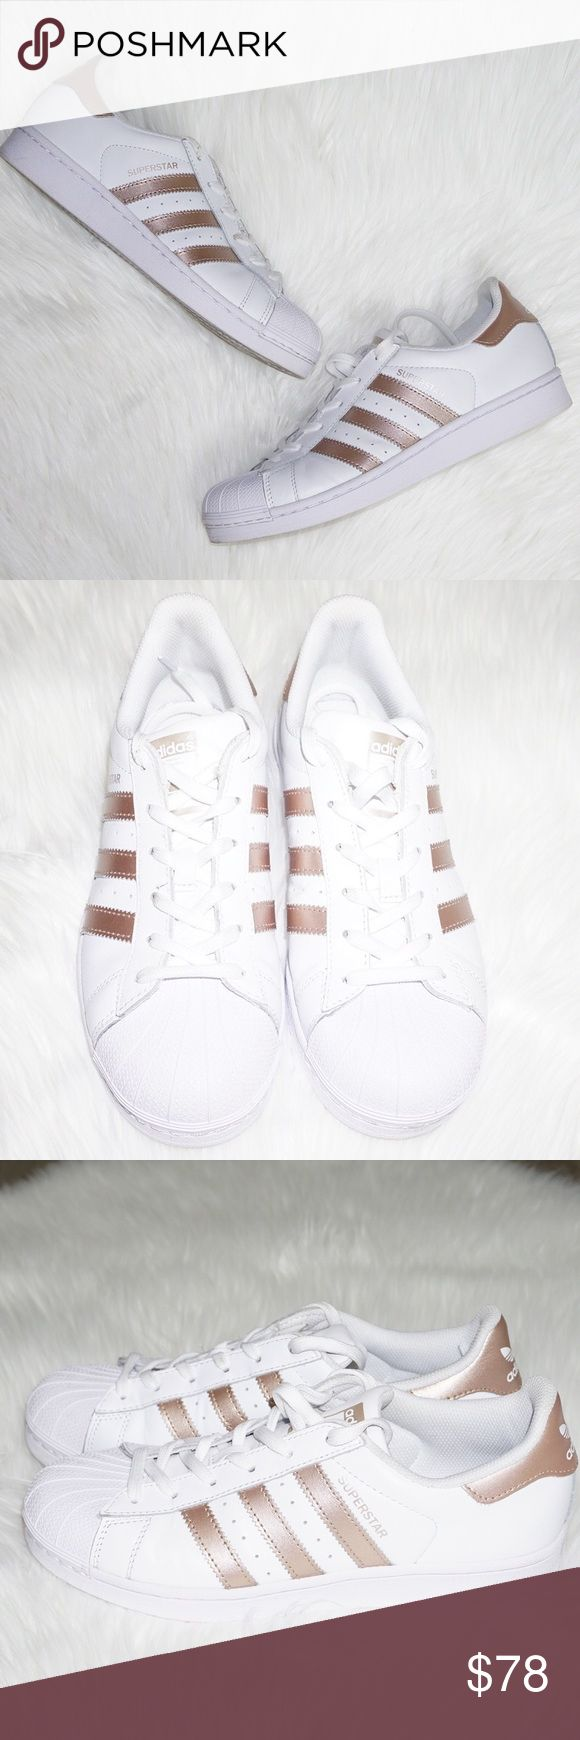 Adidas Superstar Rose Gold Sneakers Size: 7.5 Condition: Pre-owned; Excellent- These shoes were only worn 2 times. They do not have any stains on the outside leather, it is perfectly white. The only signs of wear is on the bottom of the sole or inner lining (very minimal) Features: Comes with the box. 100% Authentic  Please check out my other designer items! adidas Shoes Sneakers